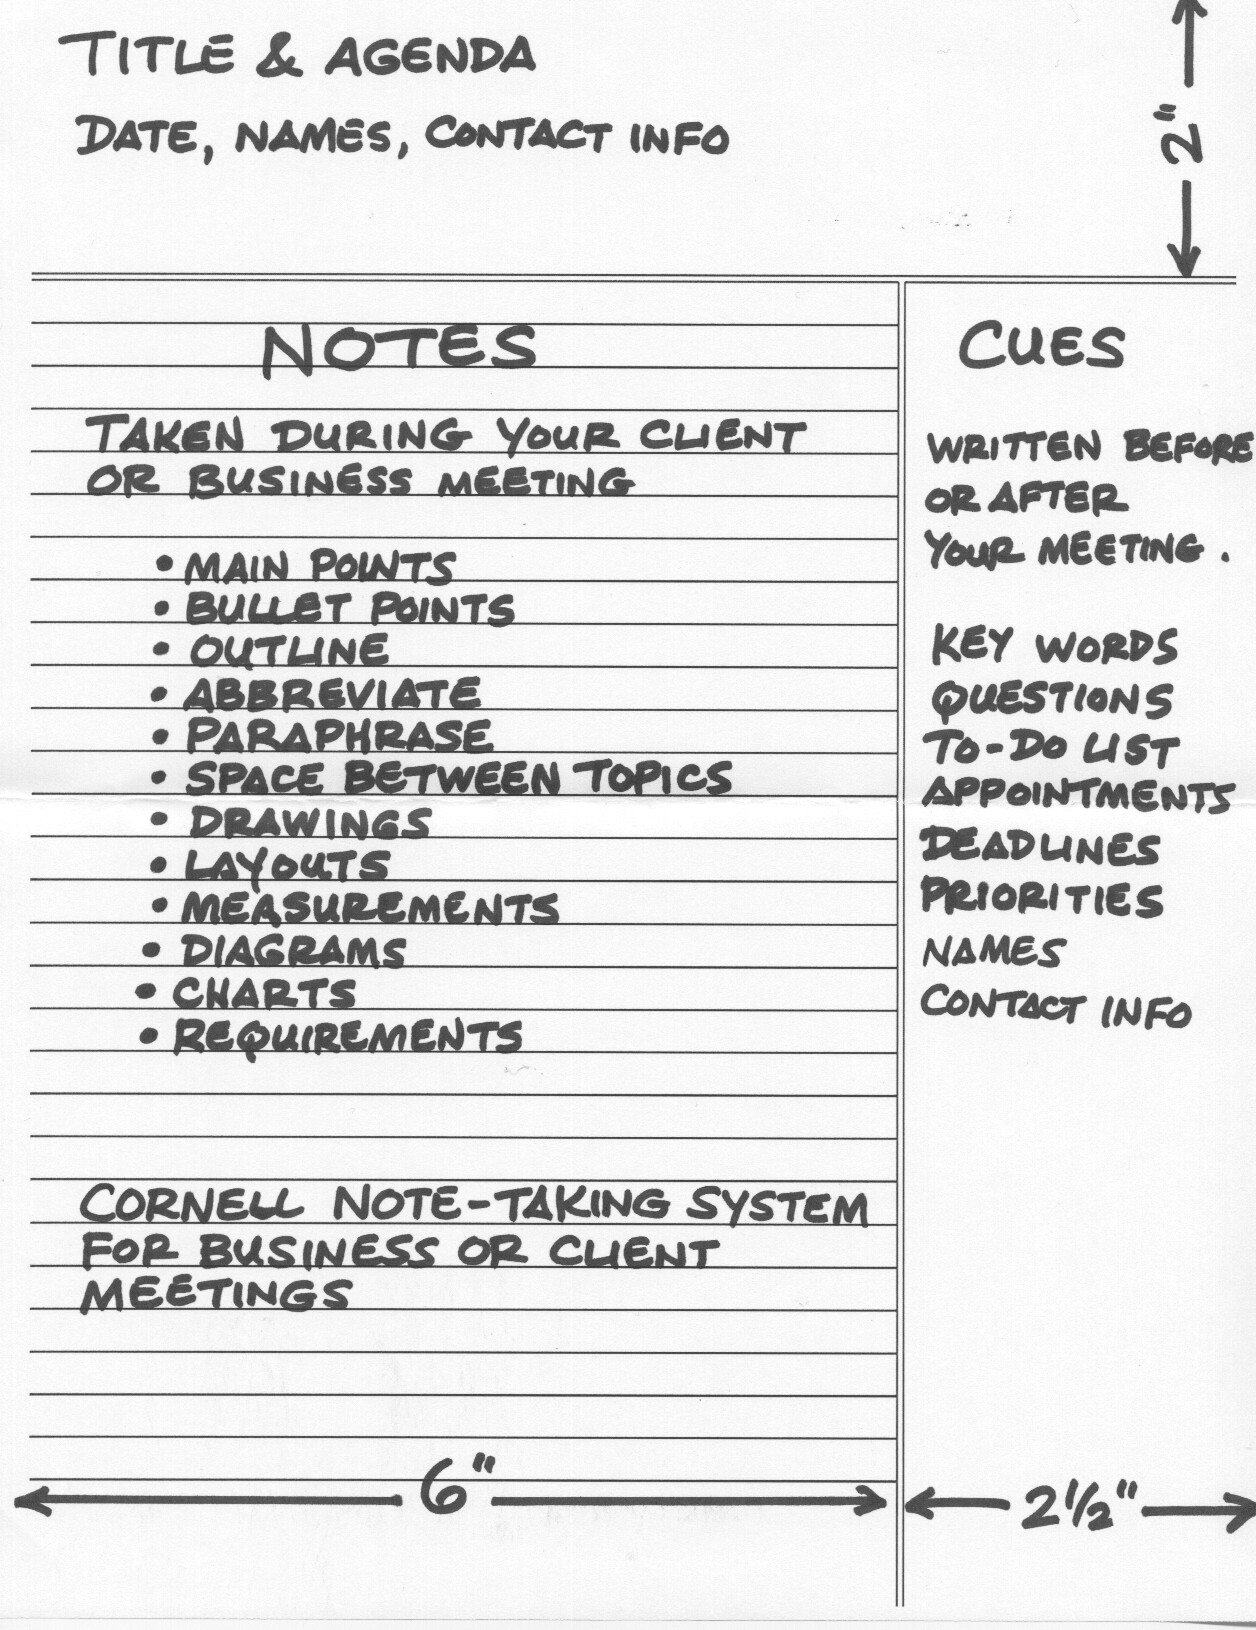 How To Use The Cornell Note Taking System Effectively For